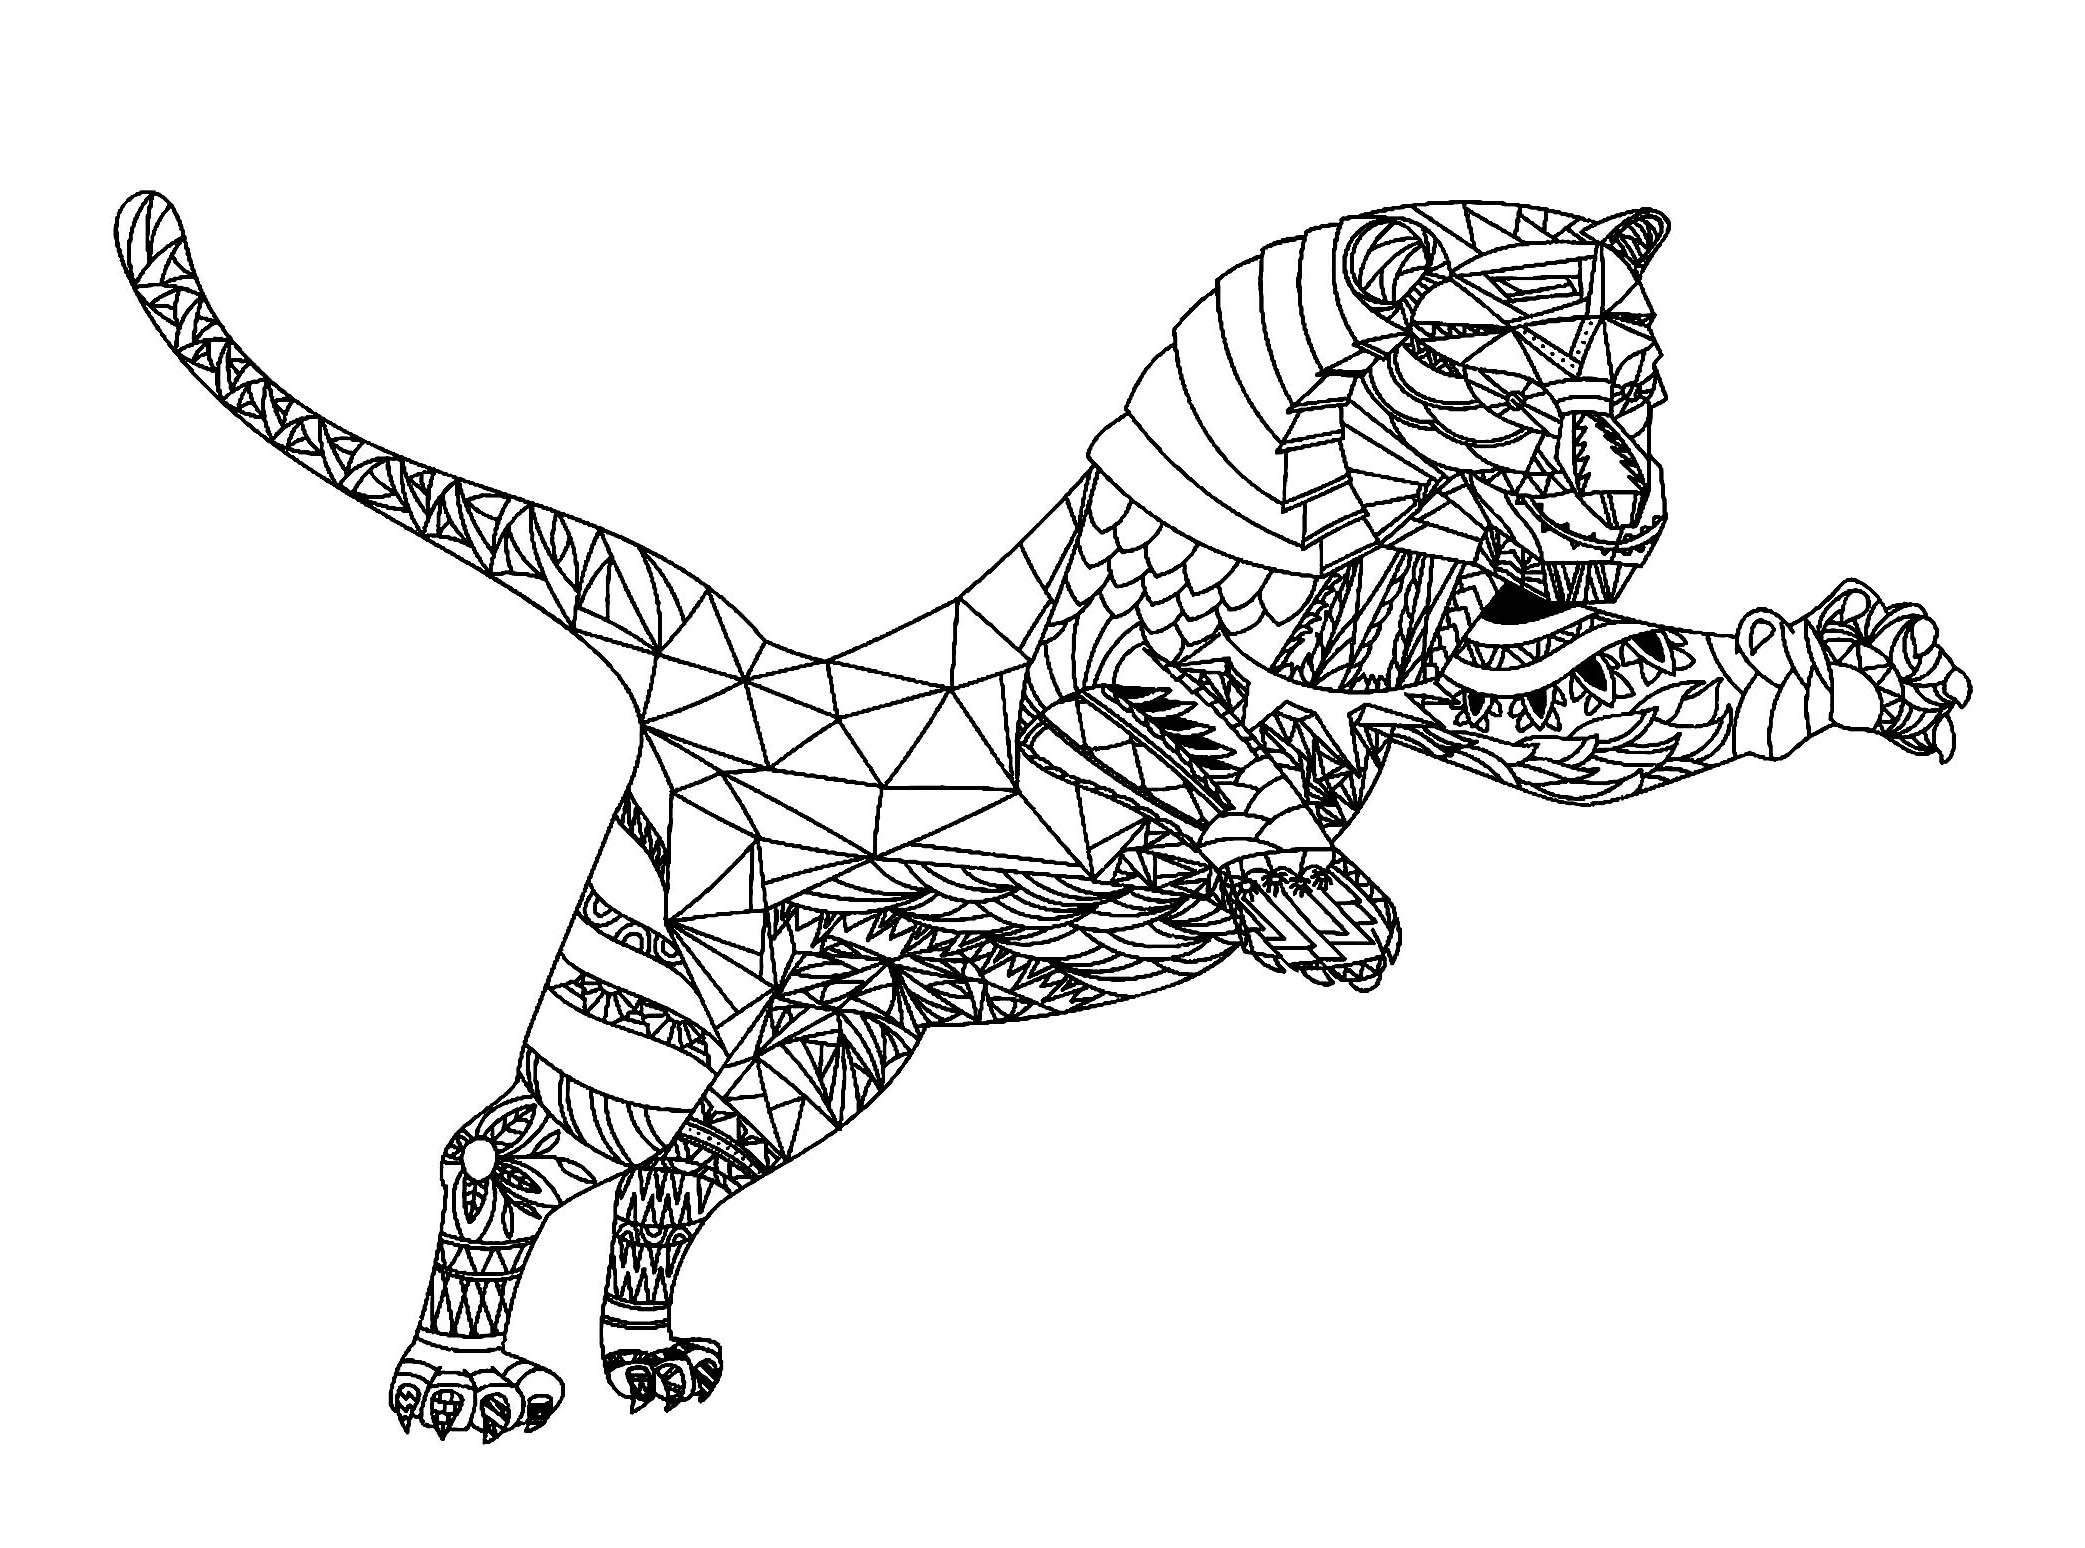 Tigers to download for free - Tigers Kids Coloring Pages